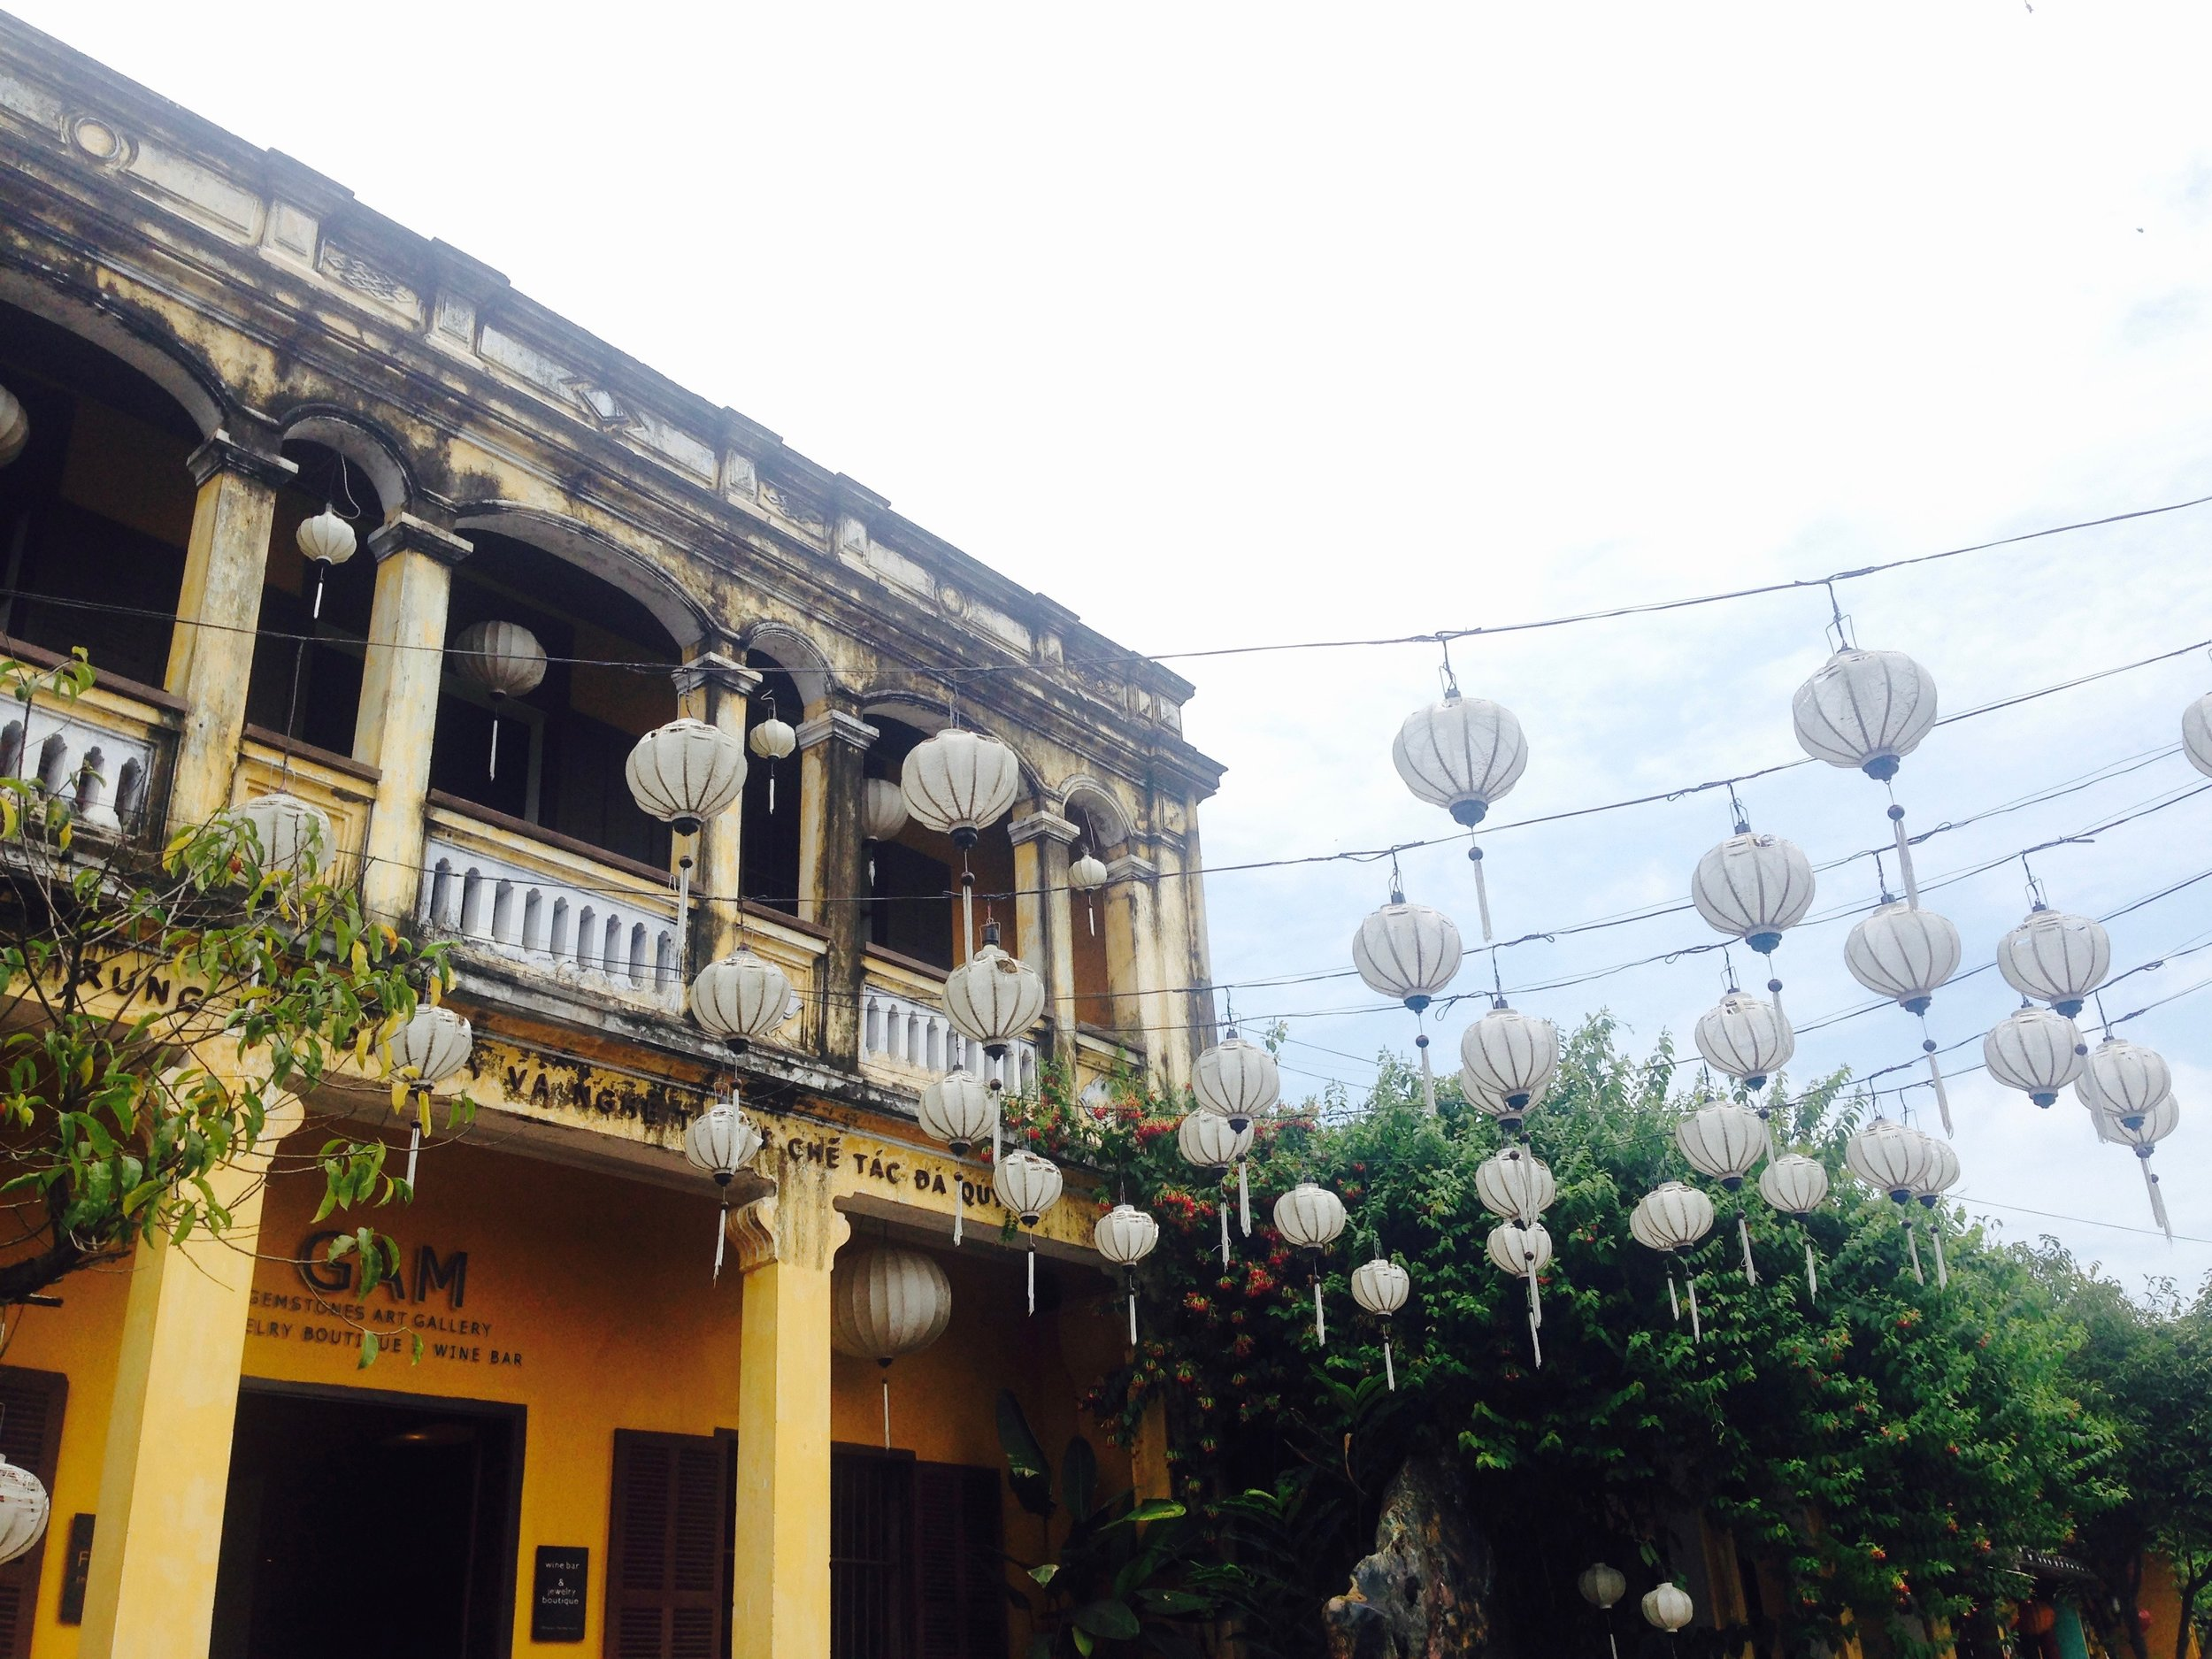 Hoi An was honored the UNESCO World Heritage Site status in 1999. Beautiful yellow washed city of lanterns and architecture influenced by French/Japanese/Chinese blends reveal a bygone era of an old port city.